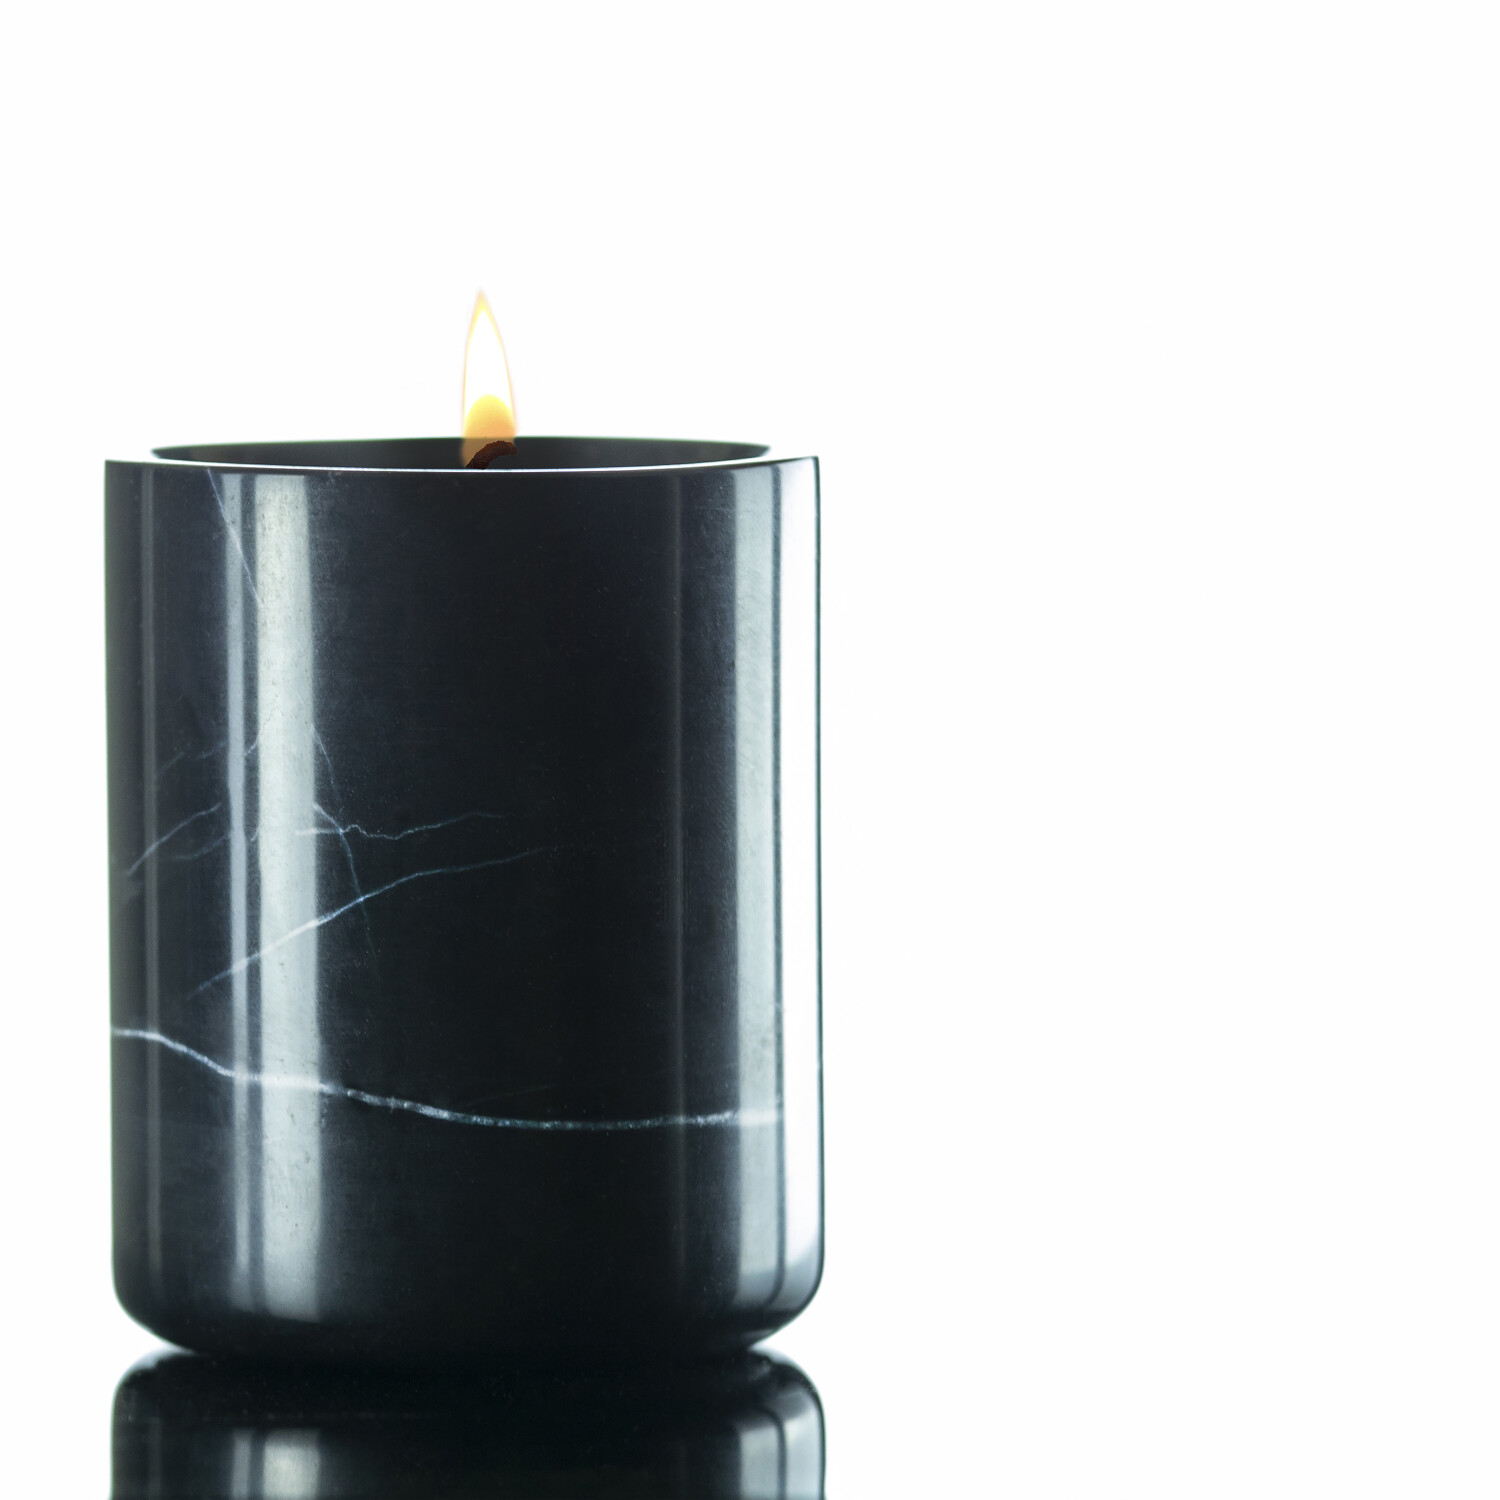 Soy Candles in 6 Scents in White or Black Marble by Willow Lane Home - Sandalwood In Black/Grey Marble